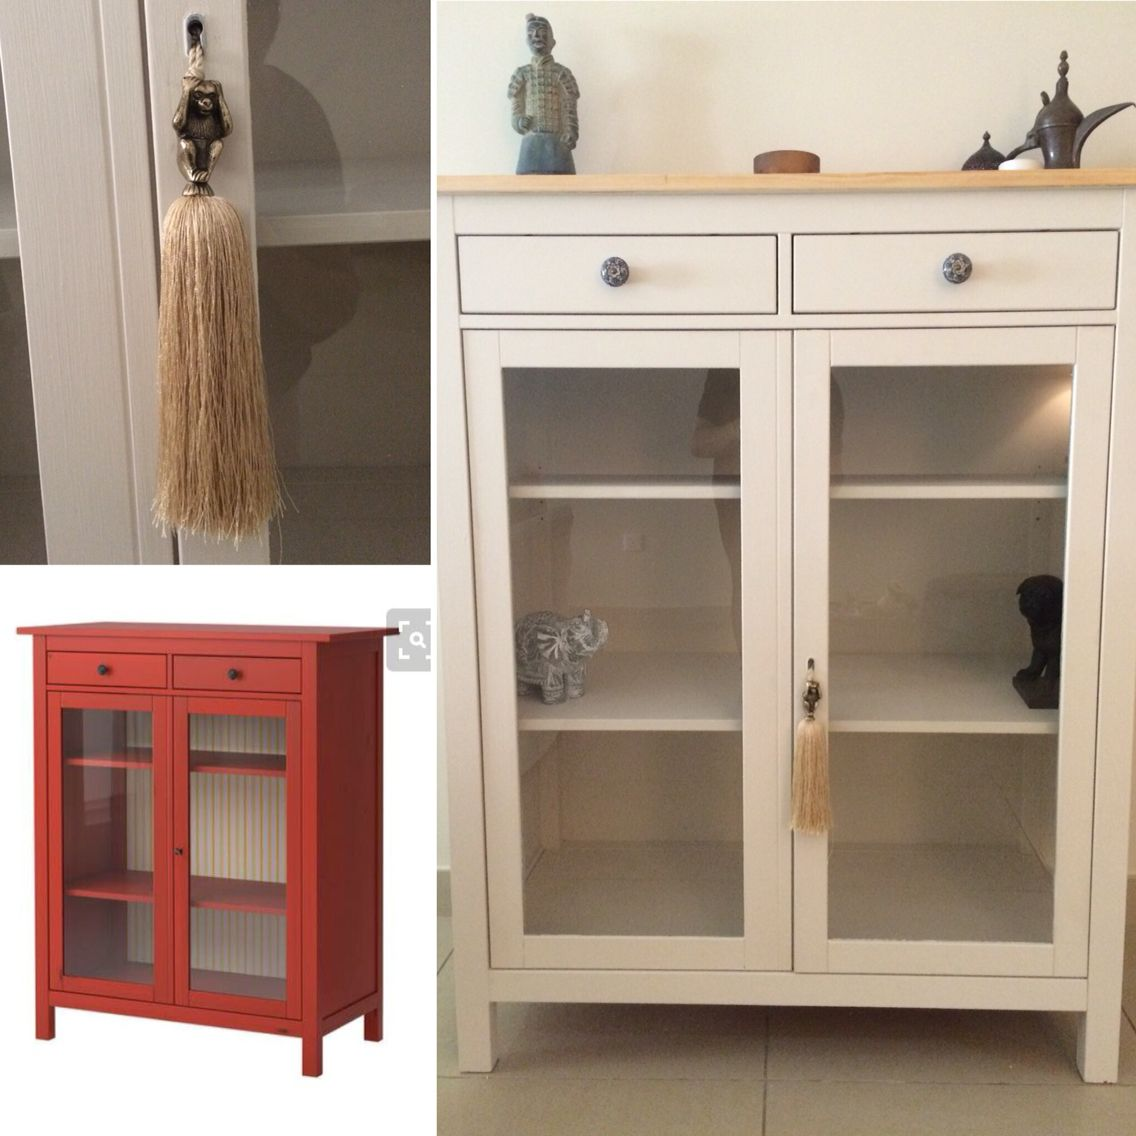 Bathroom Linen Cabinets Ikea Ikea Hemnes Linen Cabinet Upcycle. So Glad I Did This